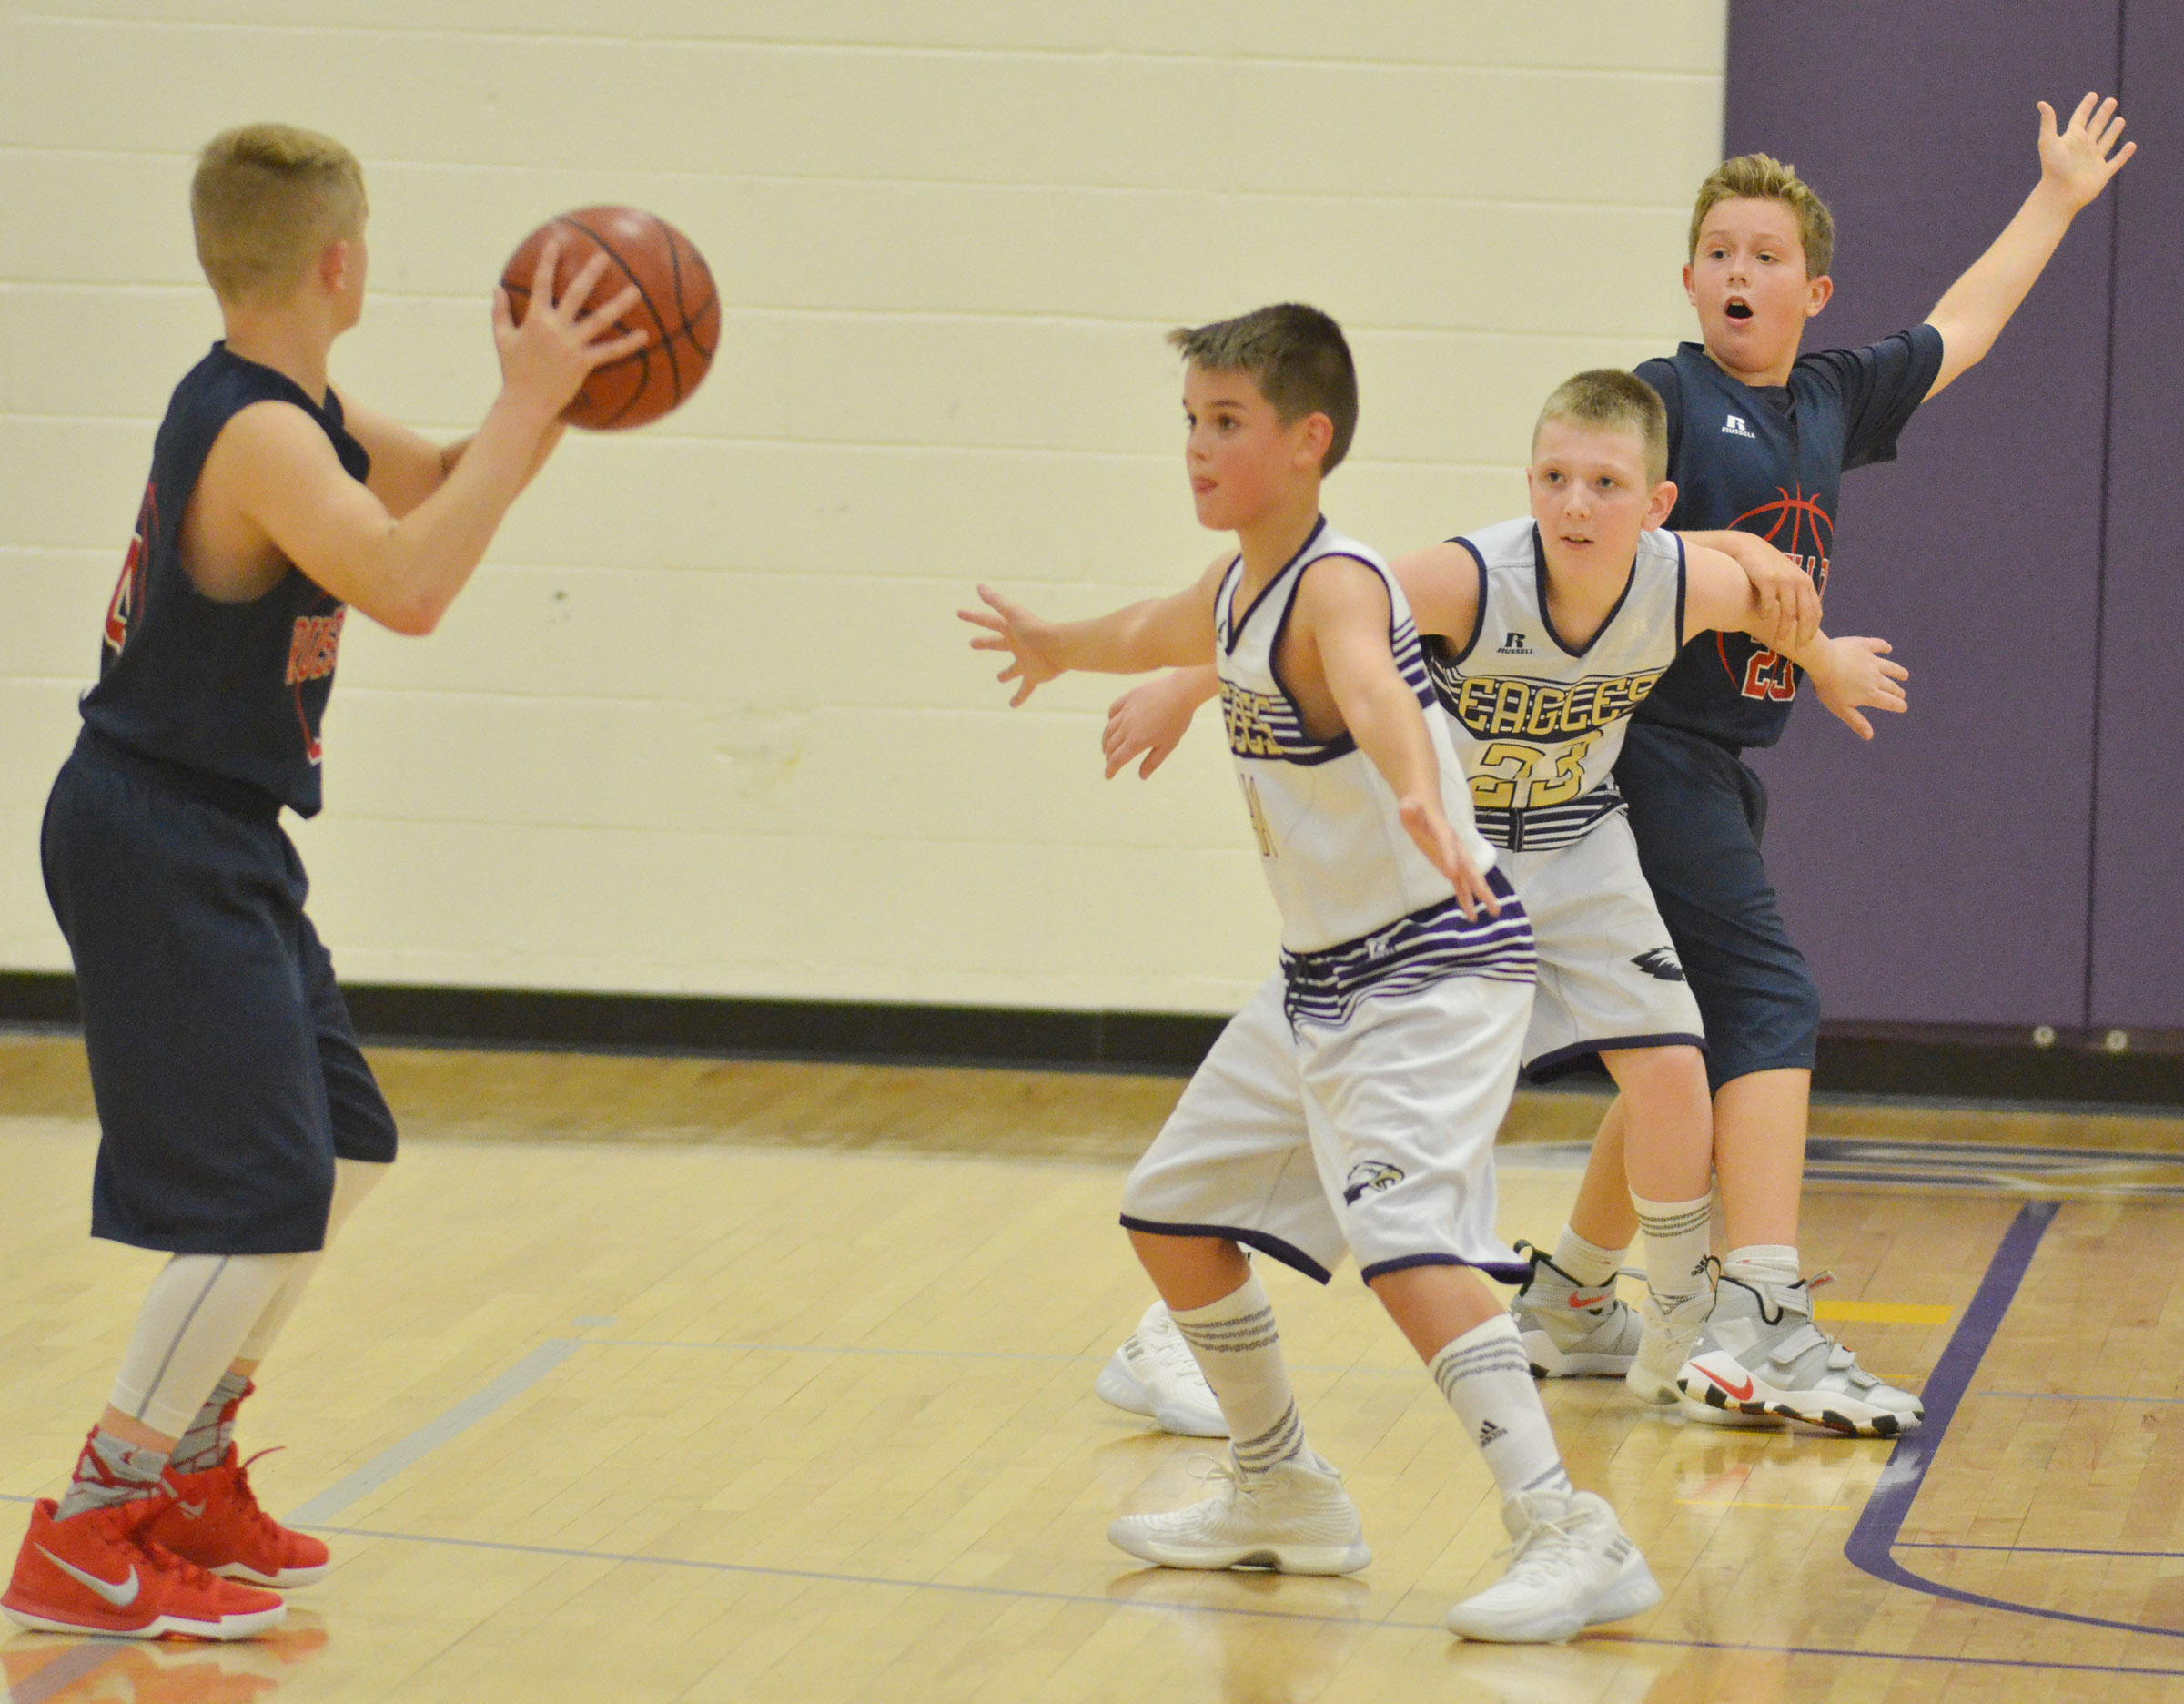 CMS sixth-grader Kaden Bloyd, at left, and Campbellsville Elementary School fifth-grader Kaleb Miller play defense.